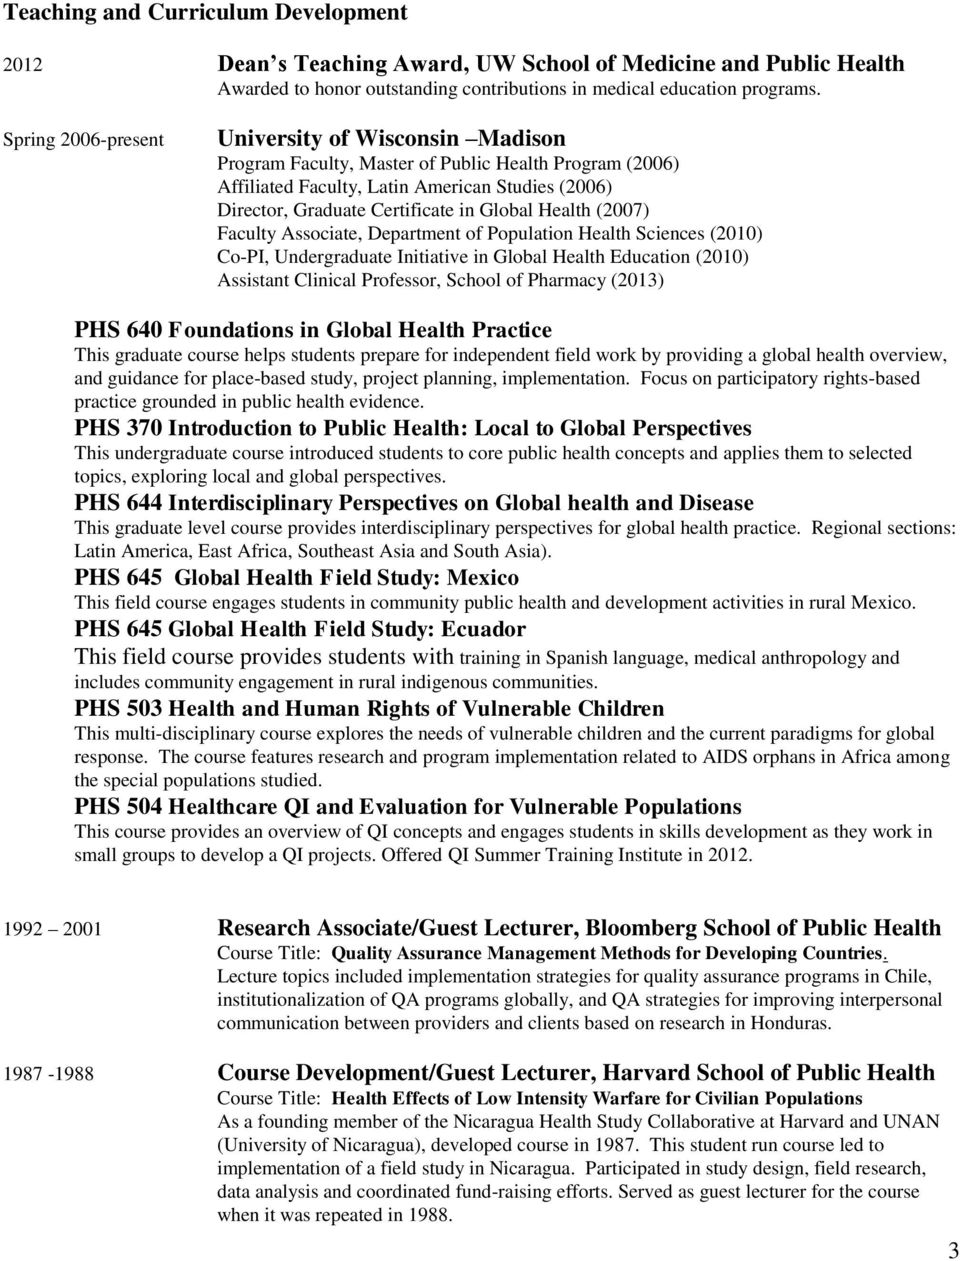 Health (2007) Faculty Associate, Department of Population Health Sciences (2010) Co-PI, Undergraduate Initiative in Global Health Education (2010) Assistant Clinical Professor, School of Pharmacy